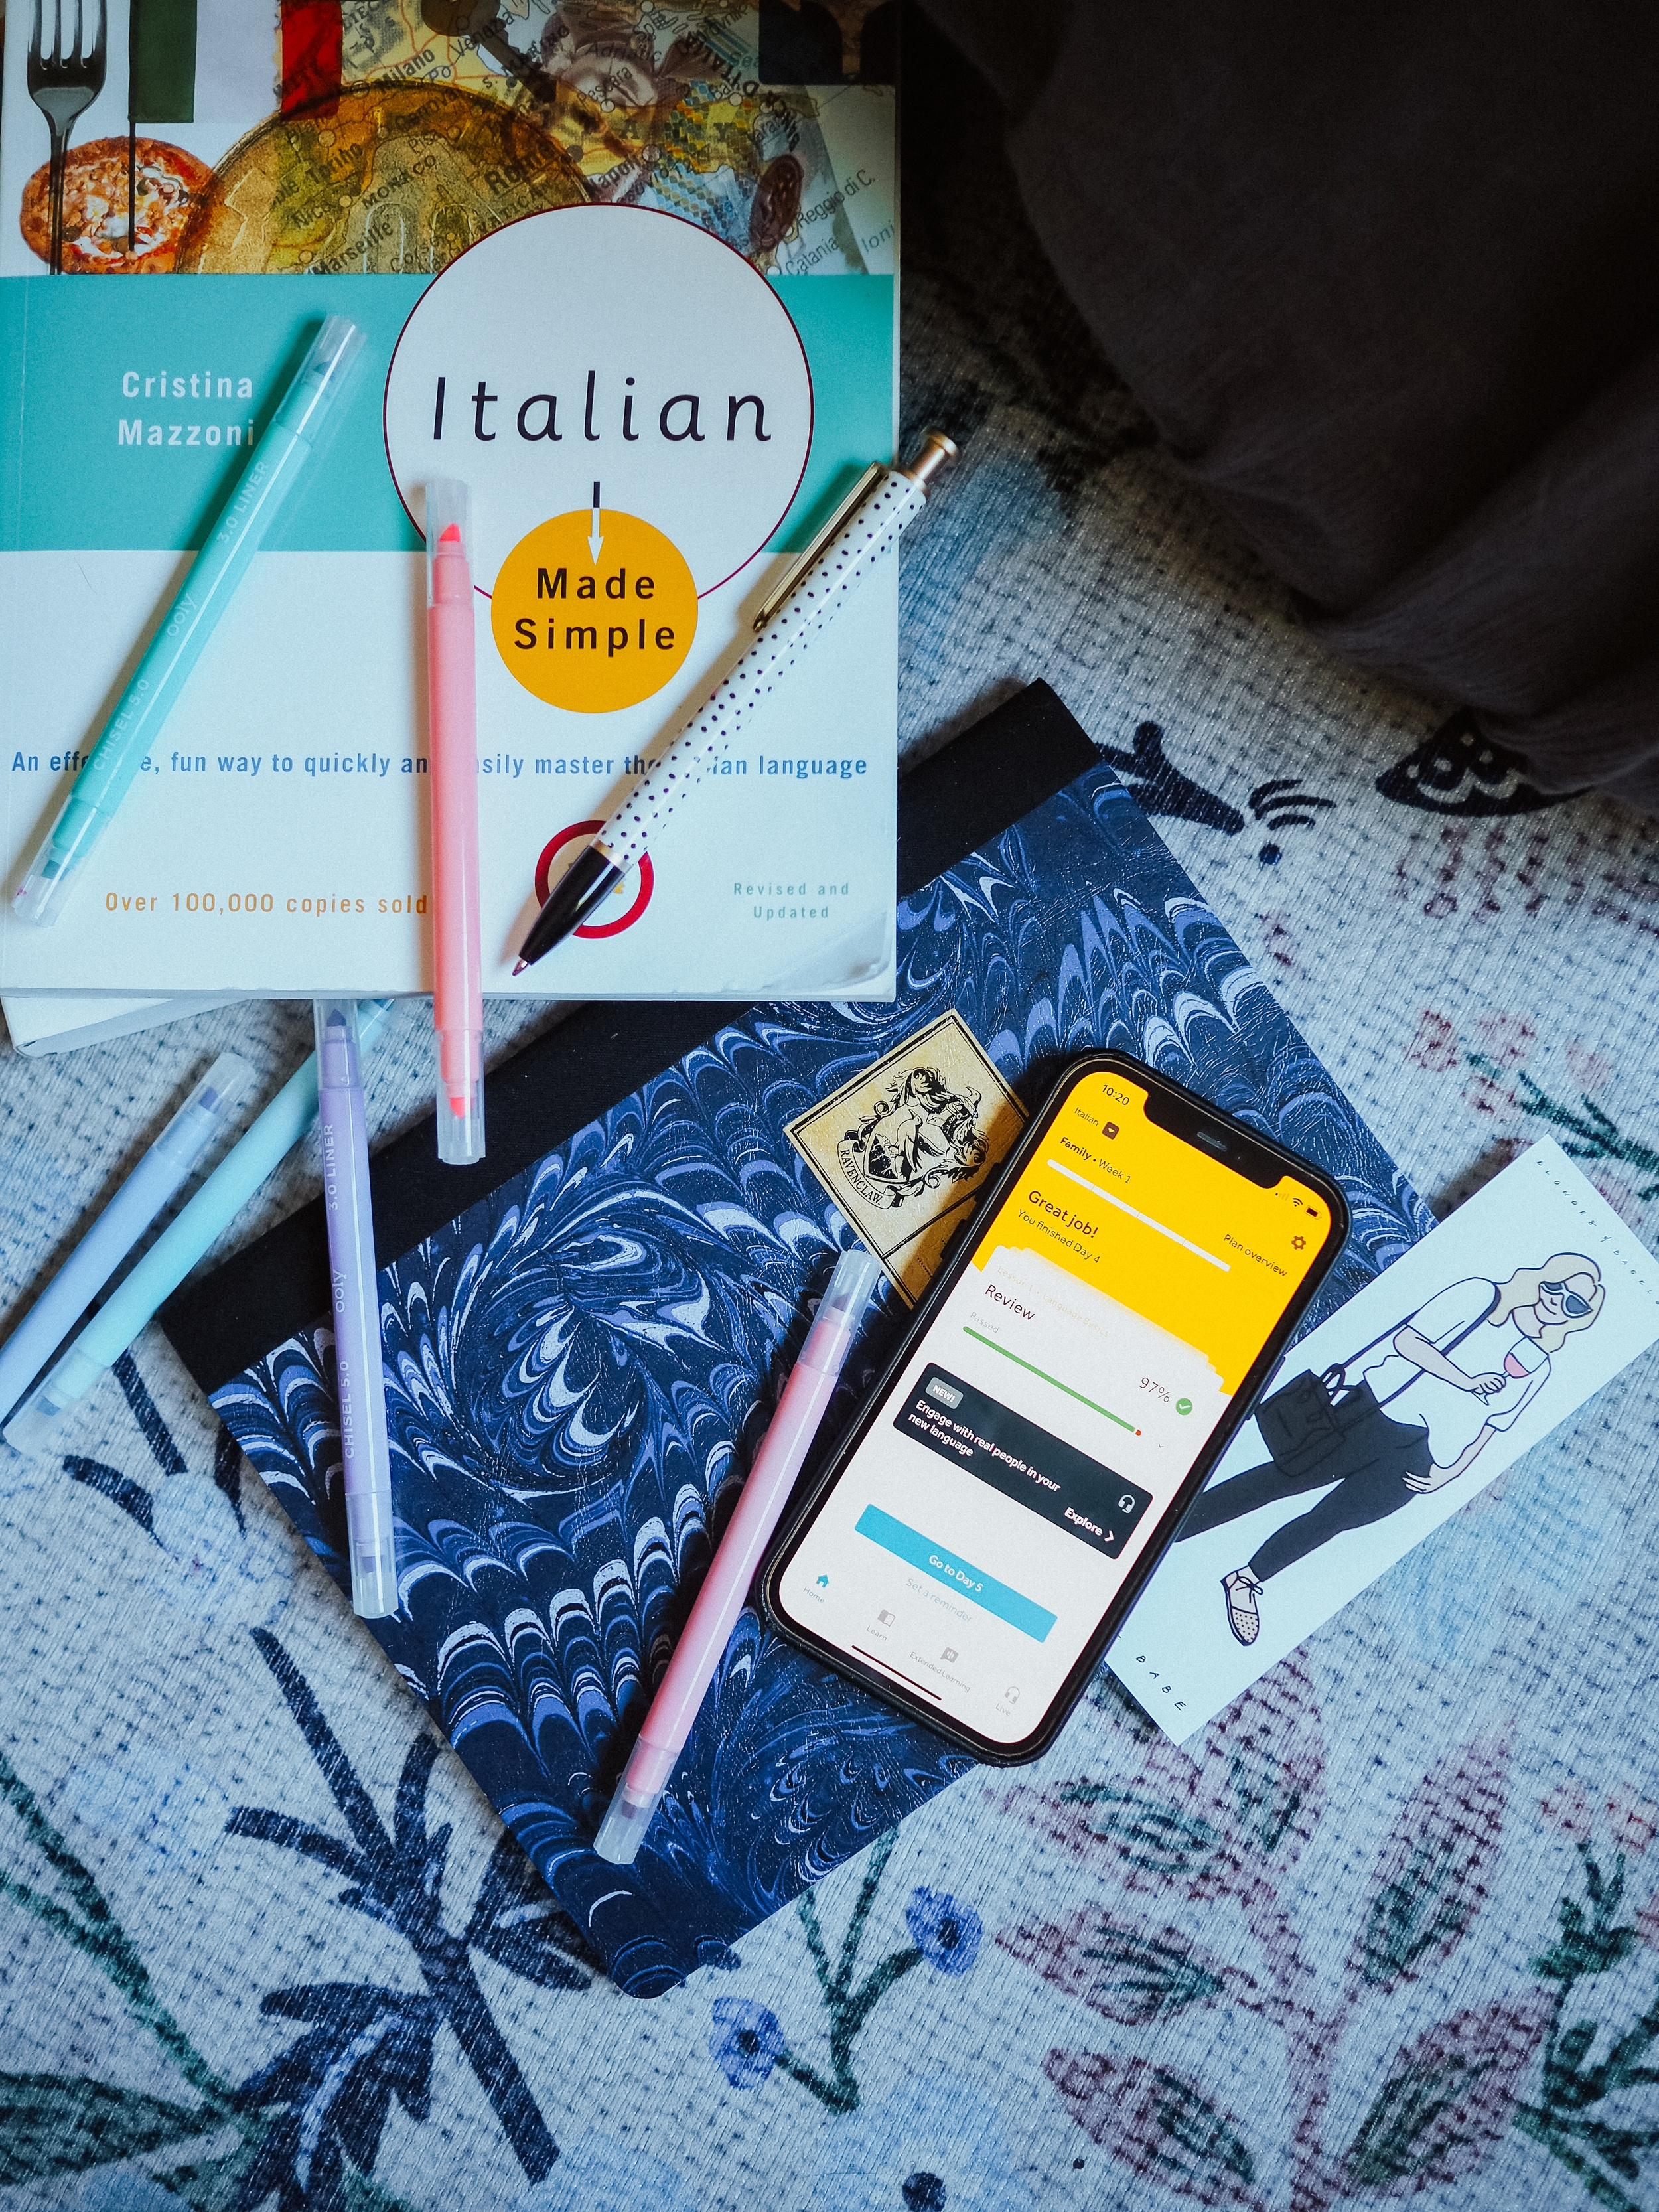 Find out how to learn Italian - no gimmicks! Kelsey from Blondes & Bagels highlights how to learn Italian efficiently while keeping it fun.